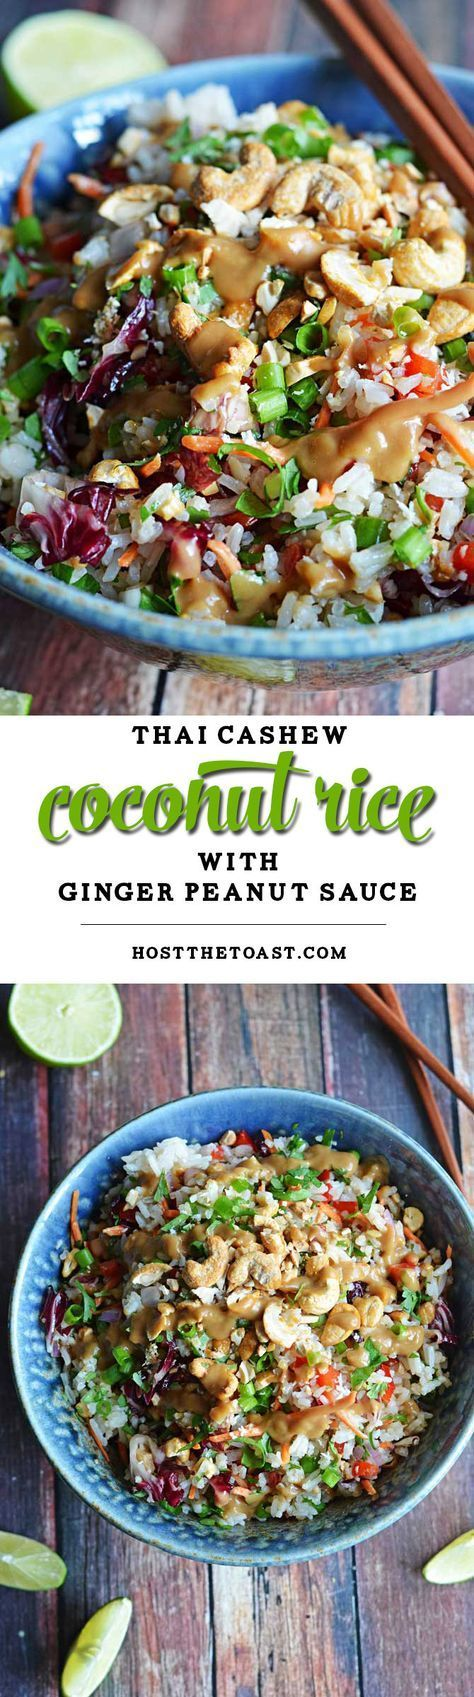 Thai Cashew Coconut Rice with Ginger Peanut Dressing. Add Thai style beef or chicken for a full meal.